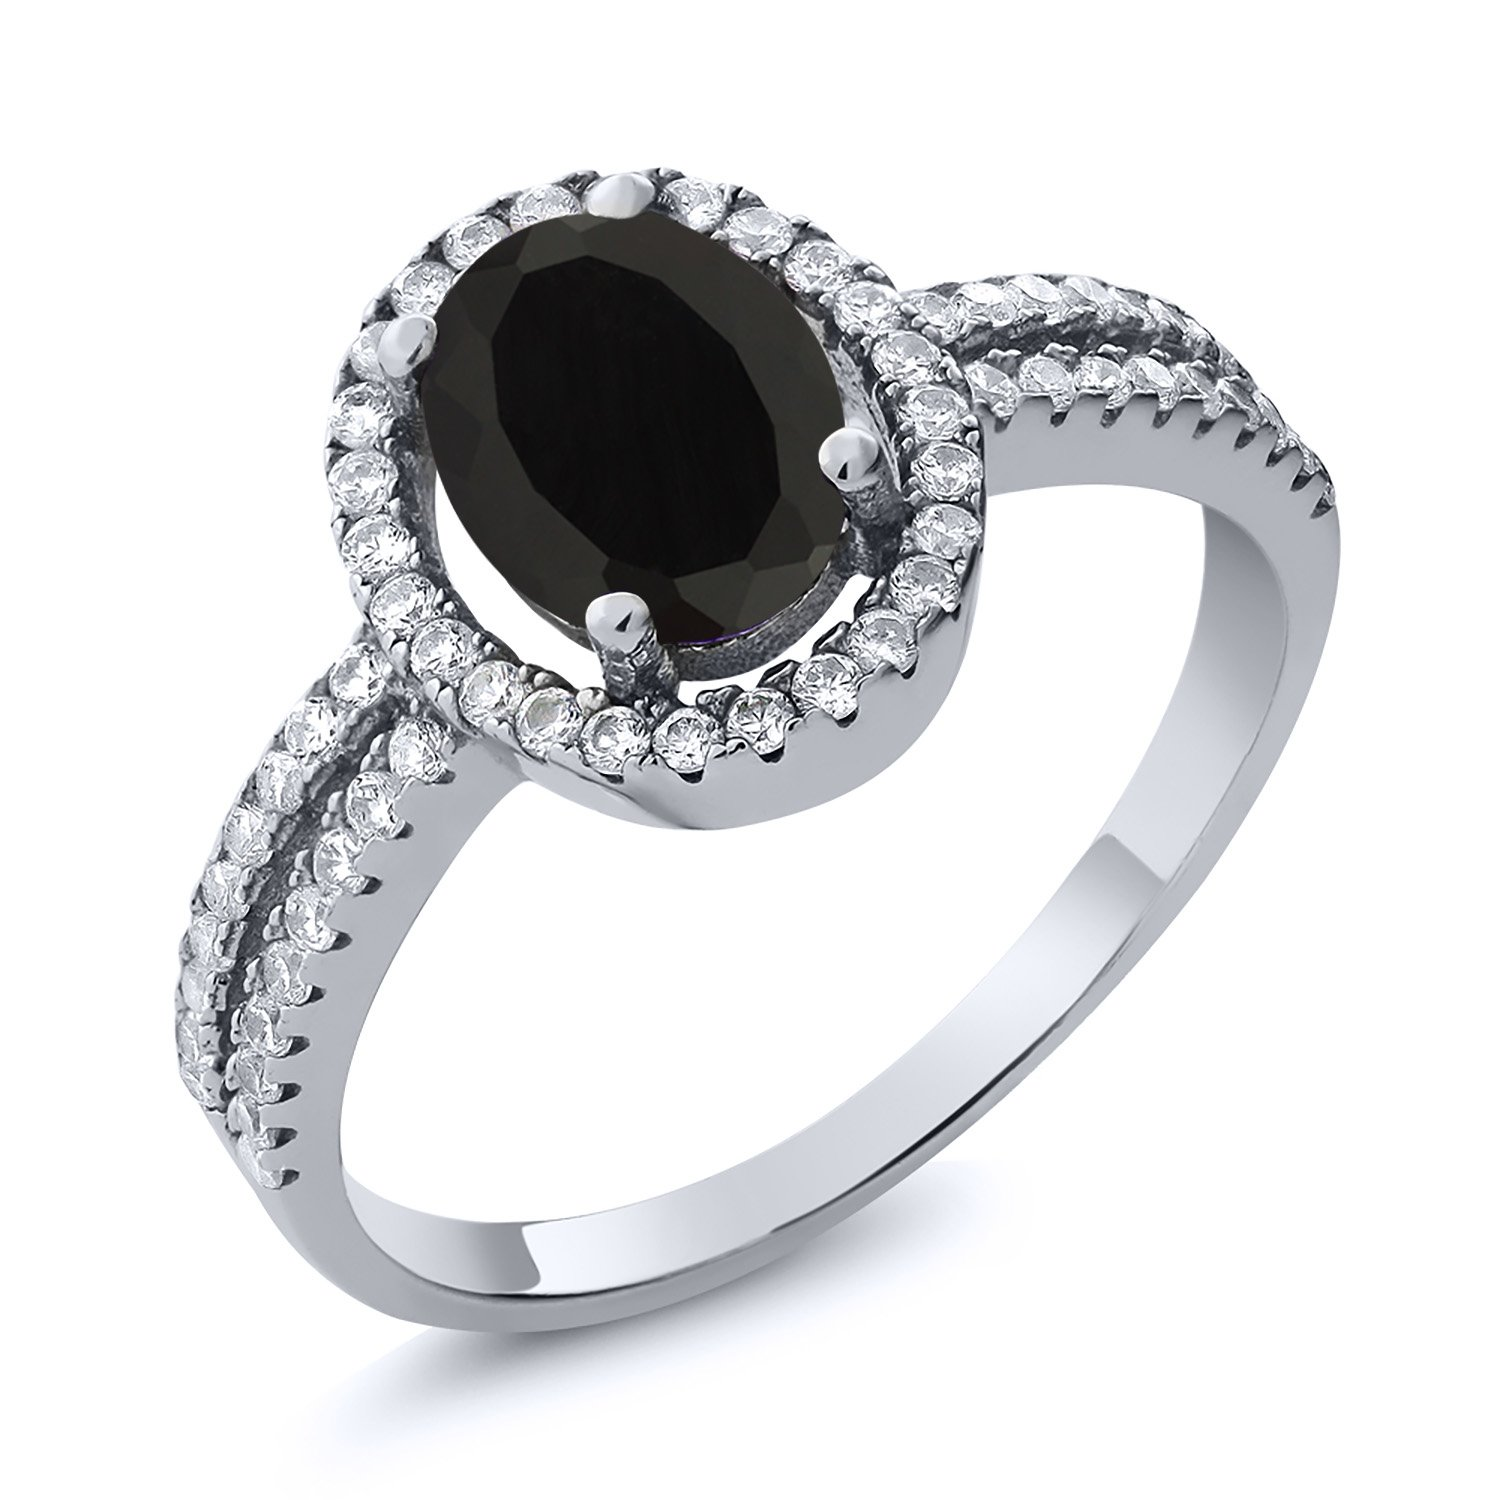 1.85 Ct Natural Oval Black Onyx 925 Sterling Silver Women's Ring (Available in size 5, 6, 7, 8, 9) MGZ-0079-OV-OX-BLC-CZ-W-SS